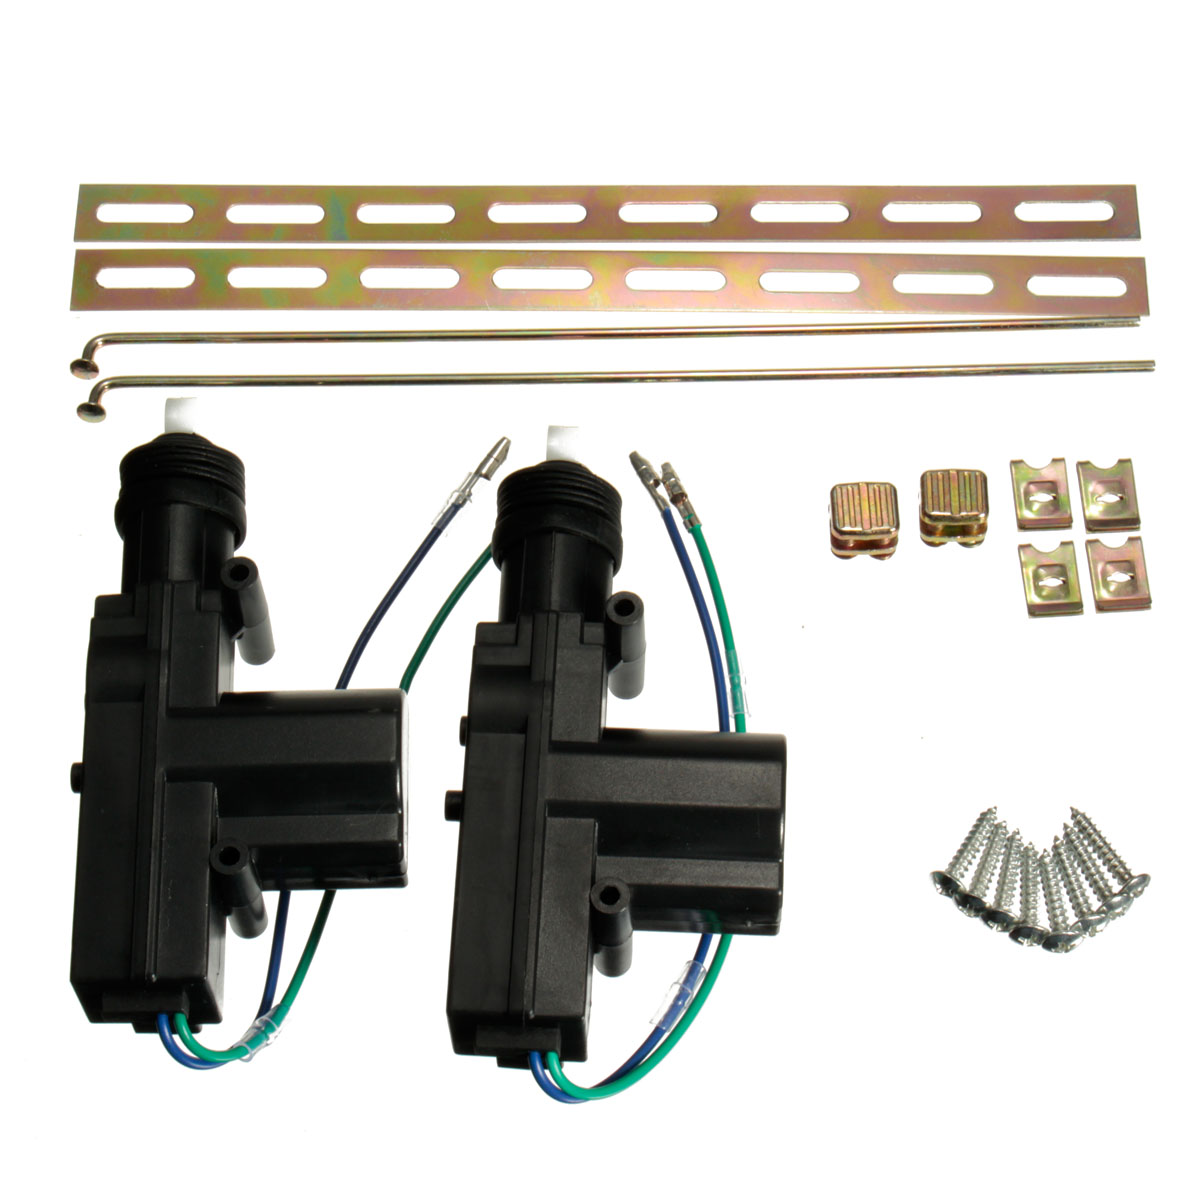 2pcs 12V Universal Car Door Power Central Lock Motor Kit With 2 Wire Actuator Auto Vehicle Remote Central Locking System Motor